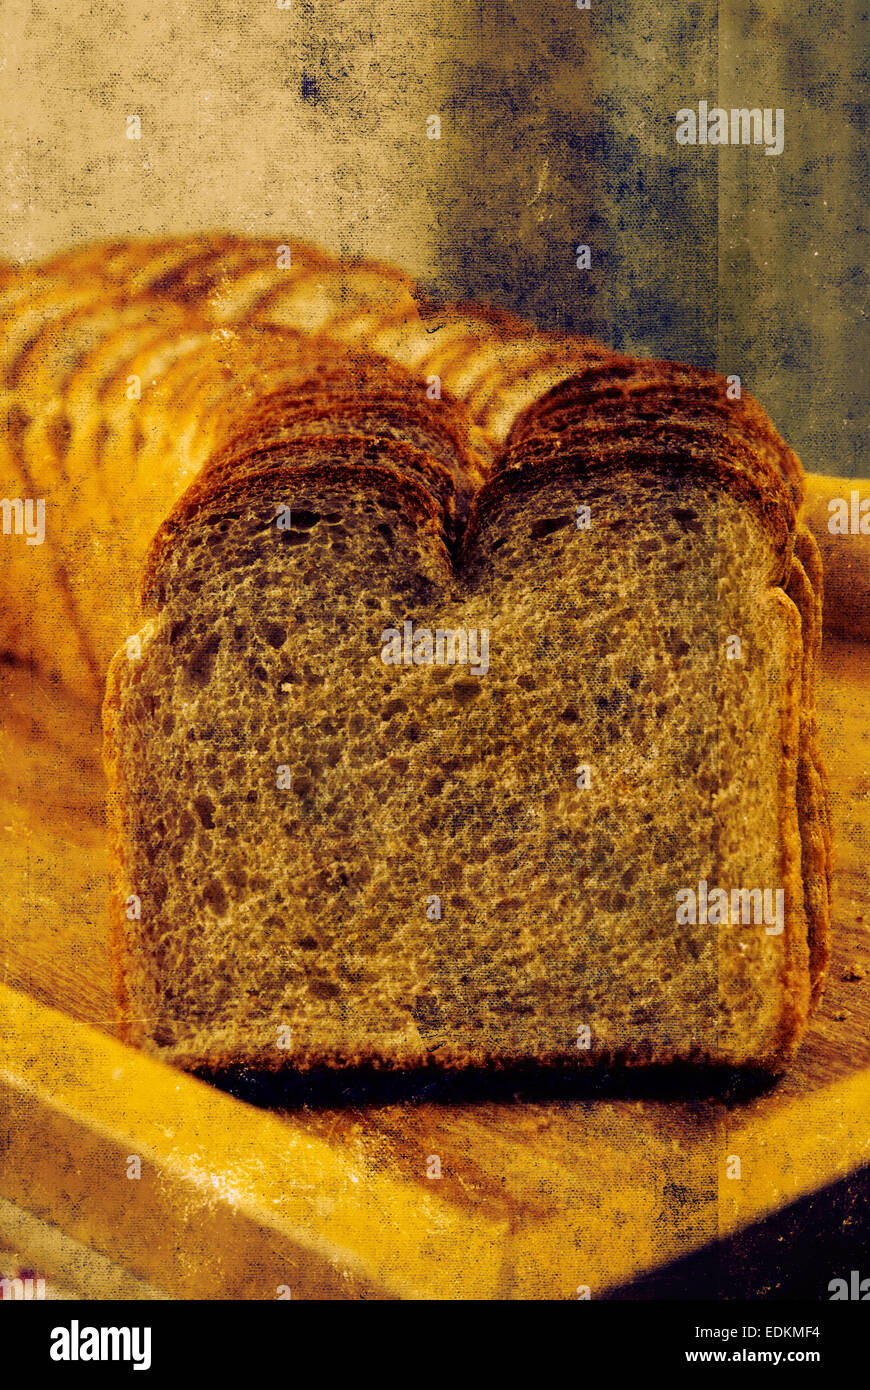 A worn-looking photo of a loaf of bread or toast.  Weathered or grungy effect applied to photo. - Stock Image